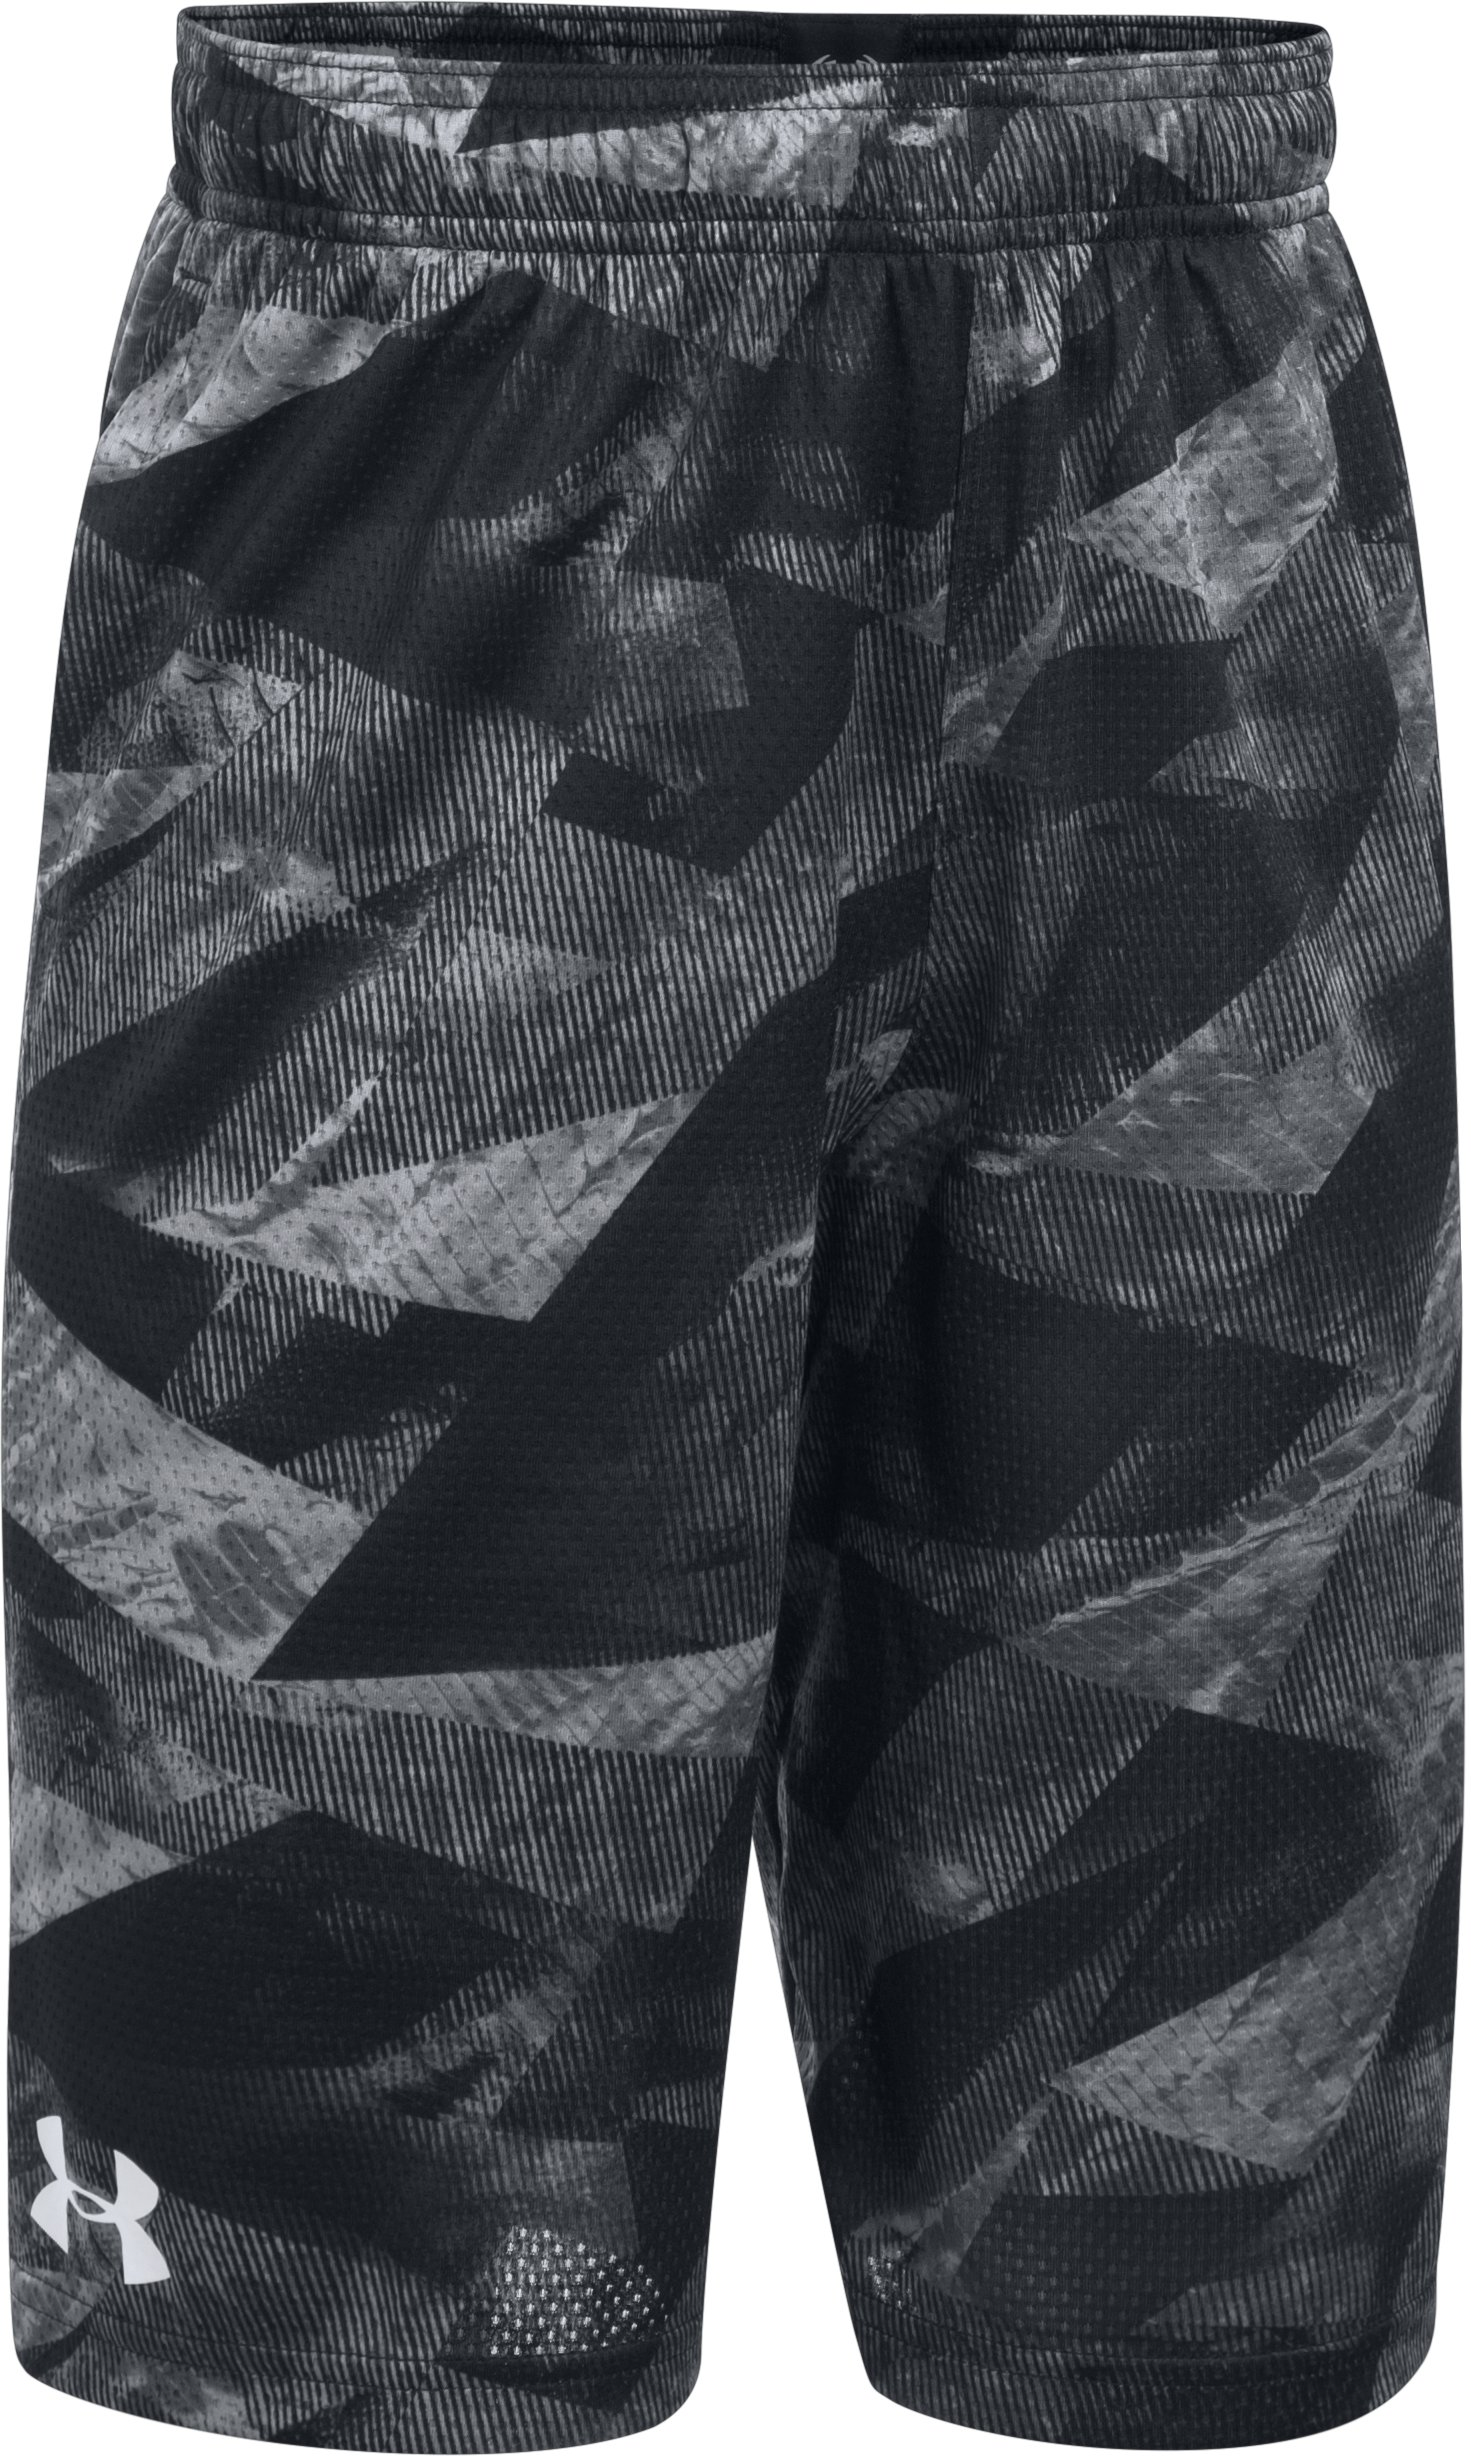 Boys' SC30 Essentials Printed Shorts, Black